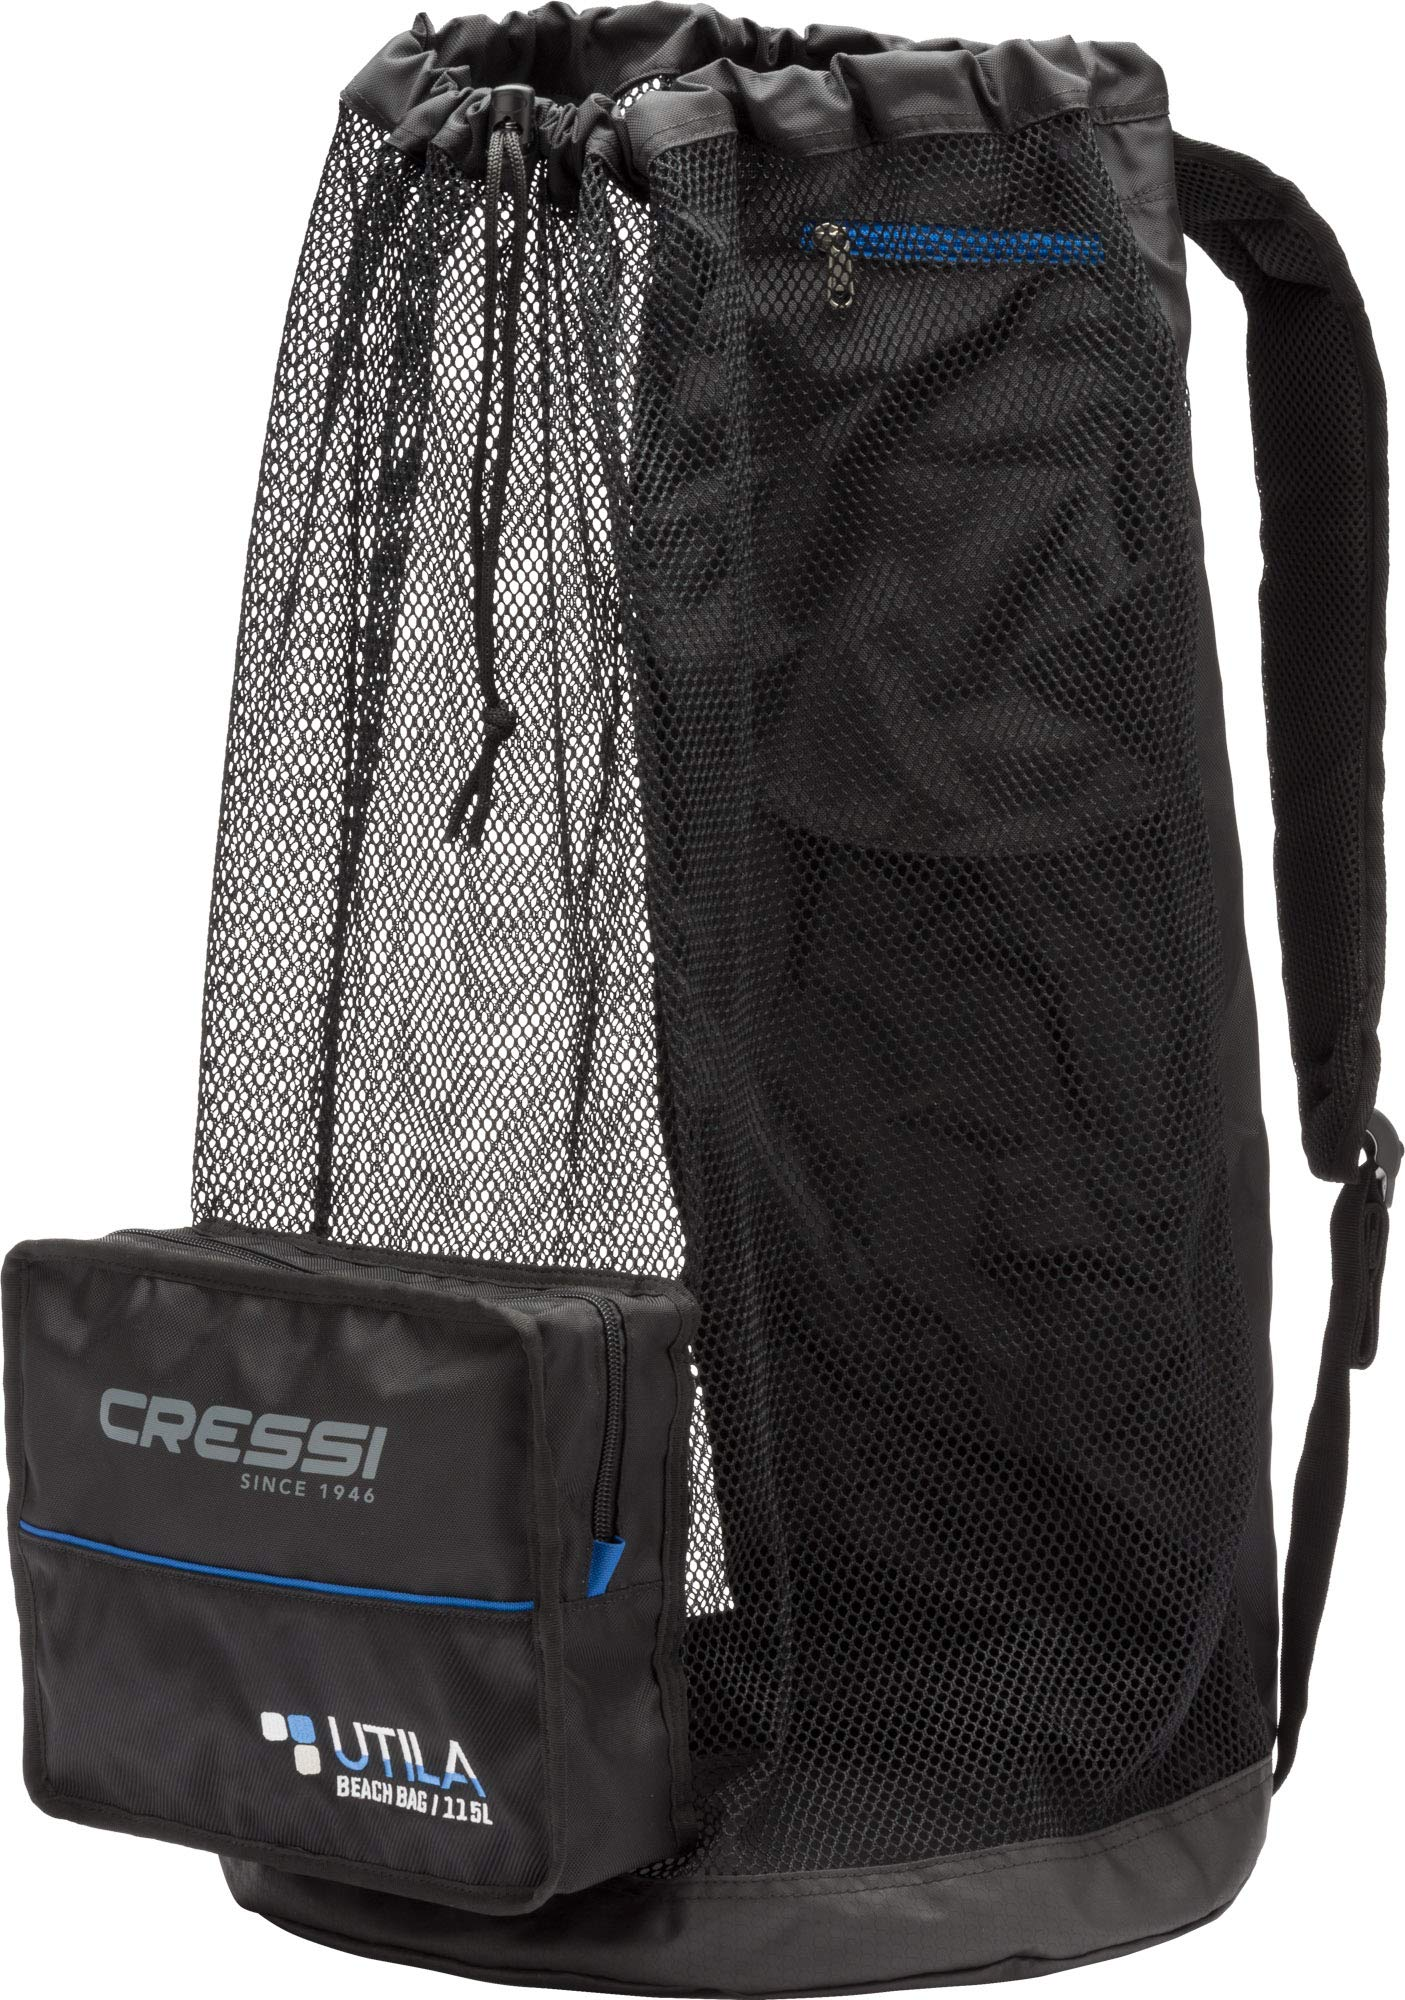 Cressi Heavy Duty Mesh Backpack 85 liters Capacity for Snorkeling, Water Sport Gear | Utila: Designed in Italy by Cressi